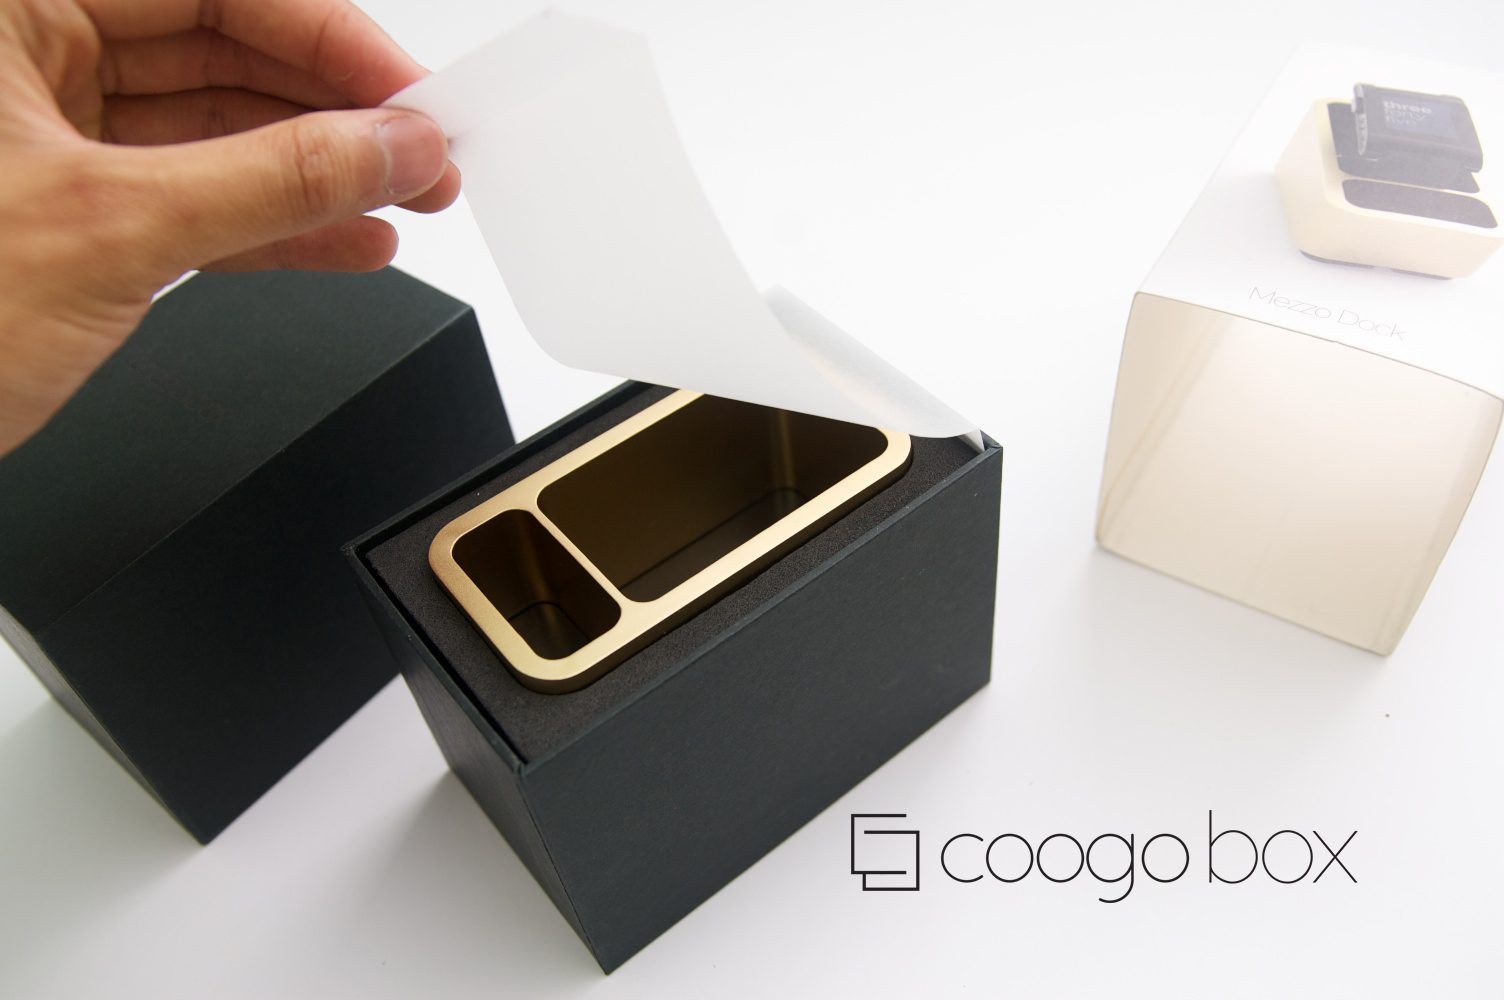 Coogobox